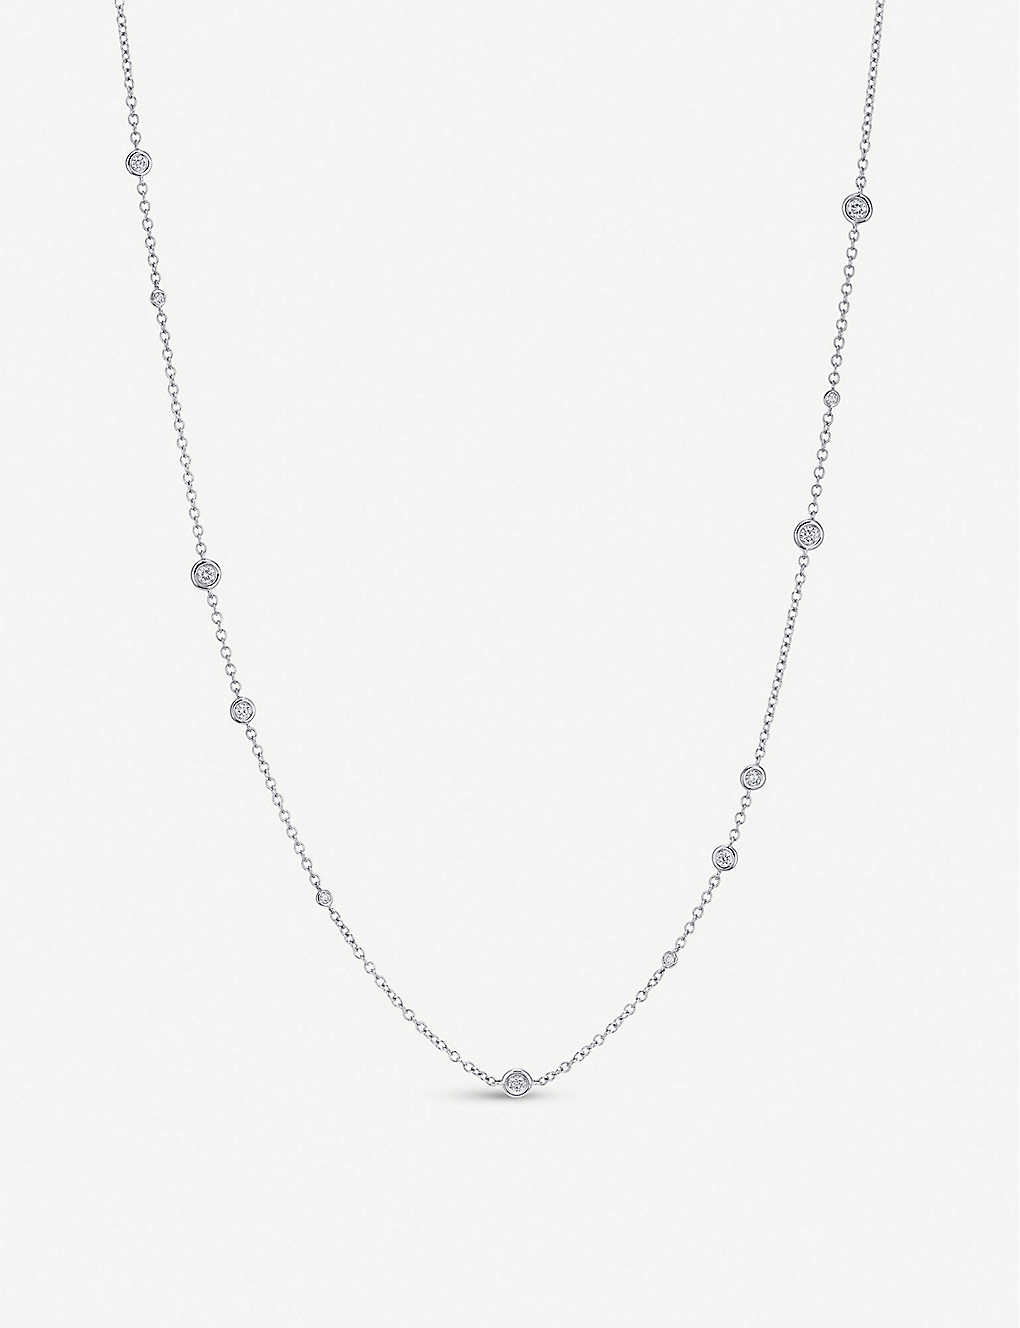 BUCHERER FINE JEWELLERY: Floating Diamonds 18ct white-gold and diamond necklace